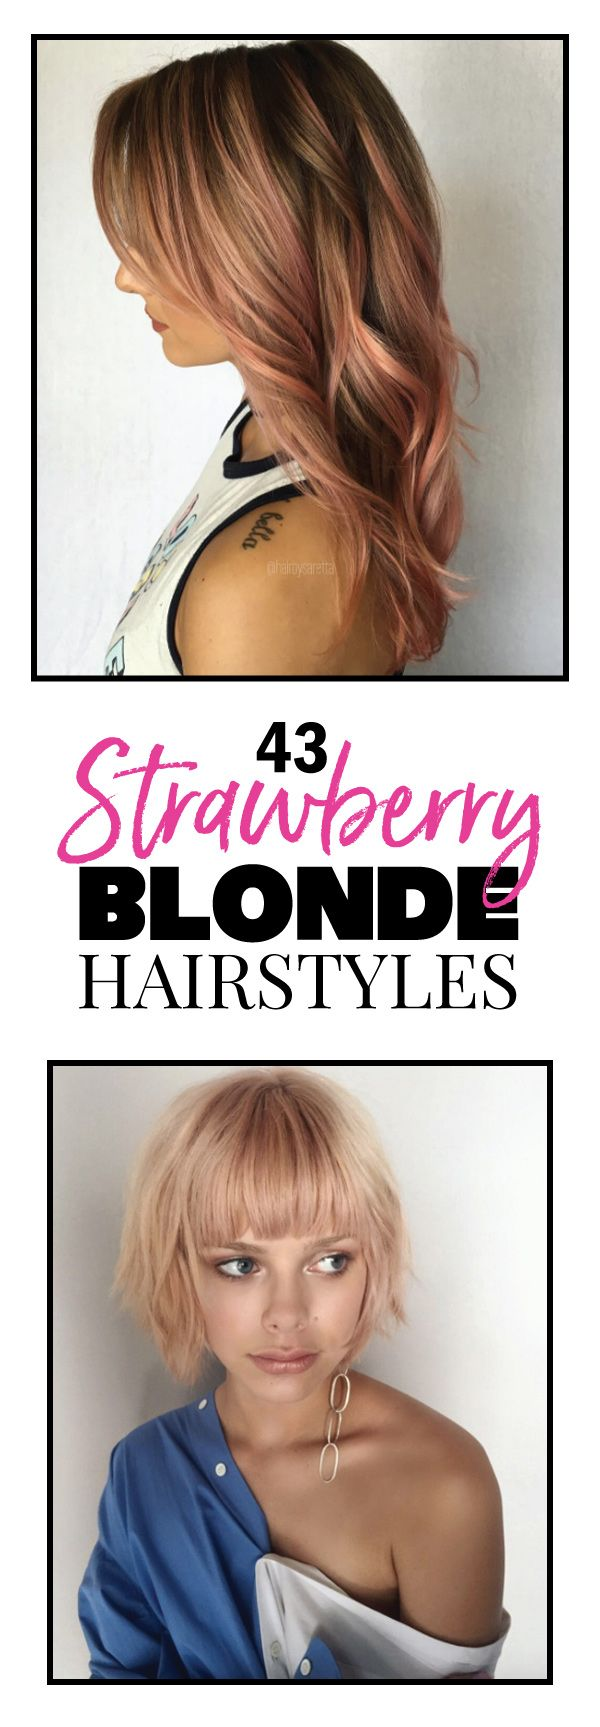 With summer just around the corner, what better way to usher in the warmer months than with a bold new hair color. Strawberry blonde to be exact. It's not quite as risky as pink, but you still get all the added perks of having completely transformed your look with something so fun and invigorating that you'll wonder why you didn't try it sooner. We've scoured the depths of Instagram and raided our favorite stylist's coffers to bring to you some truly fantastic examples of strawberry blonde…